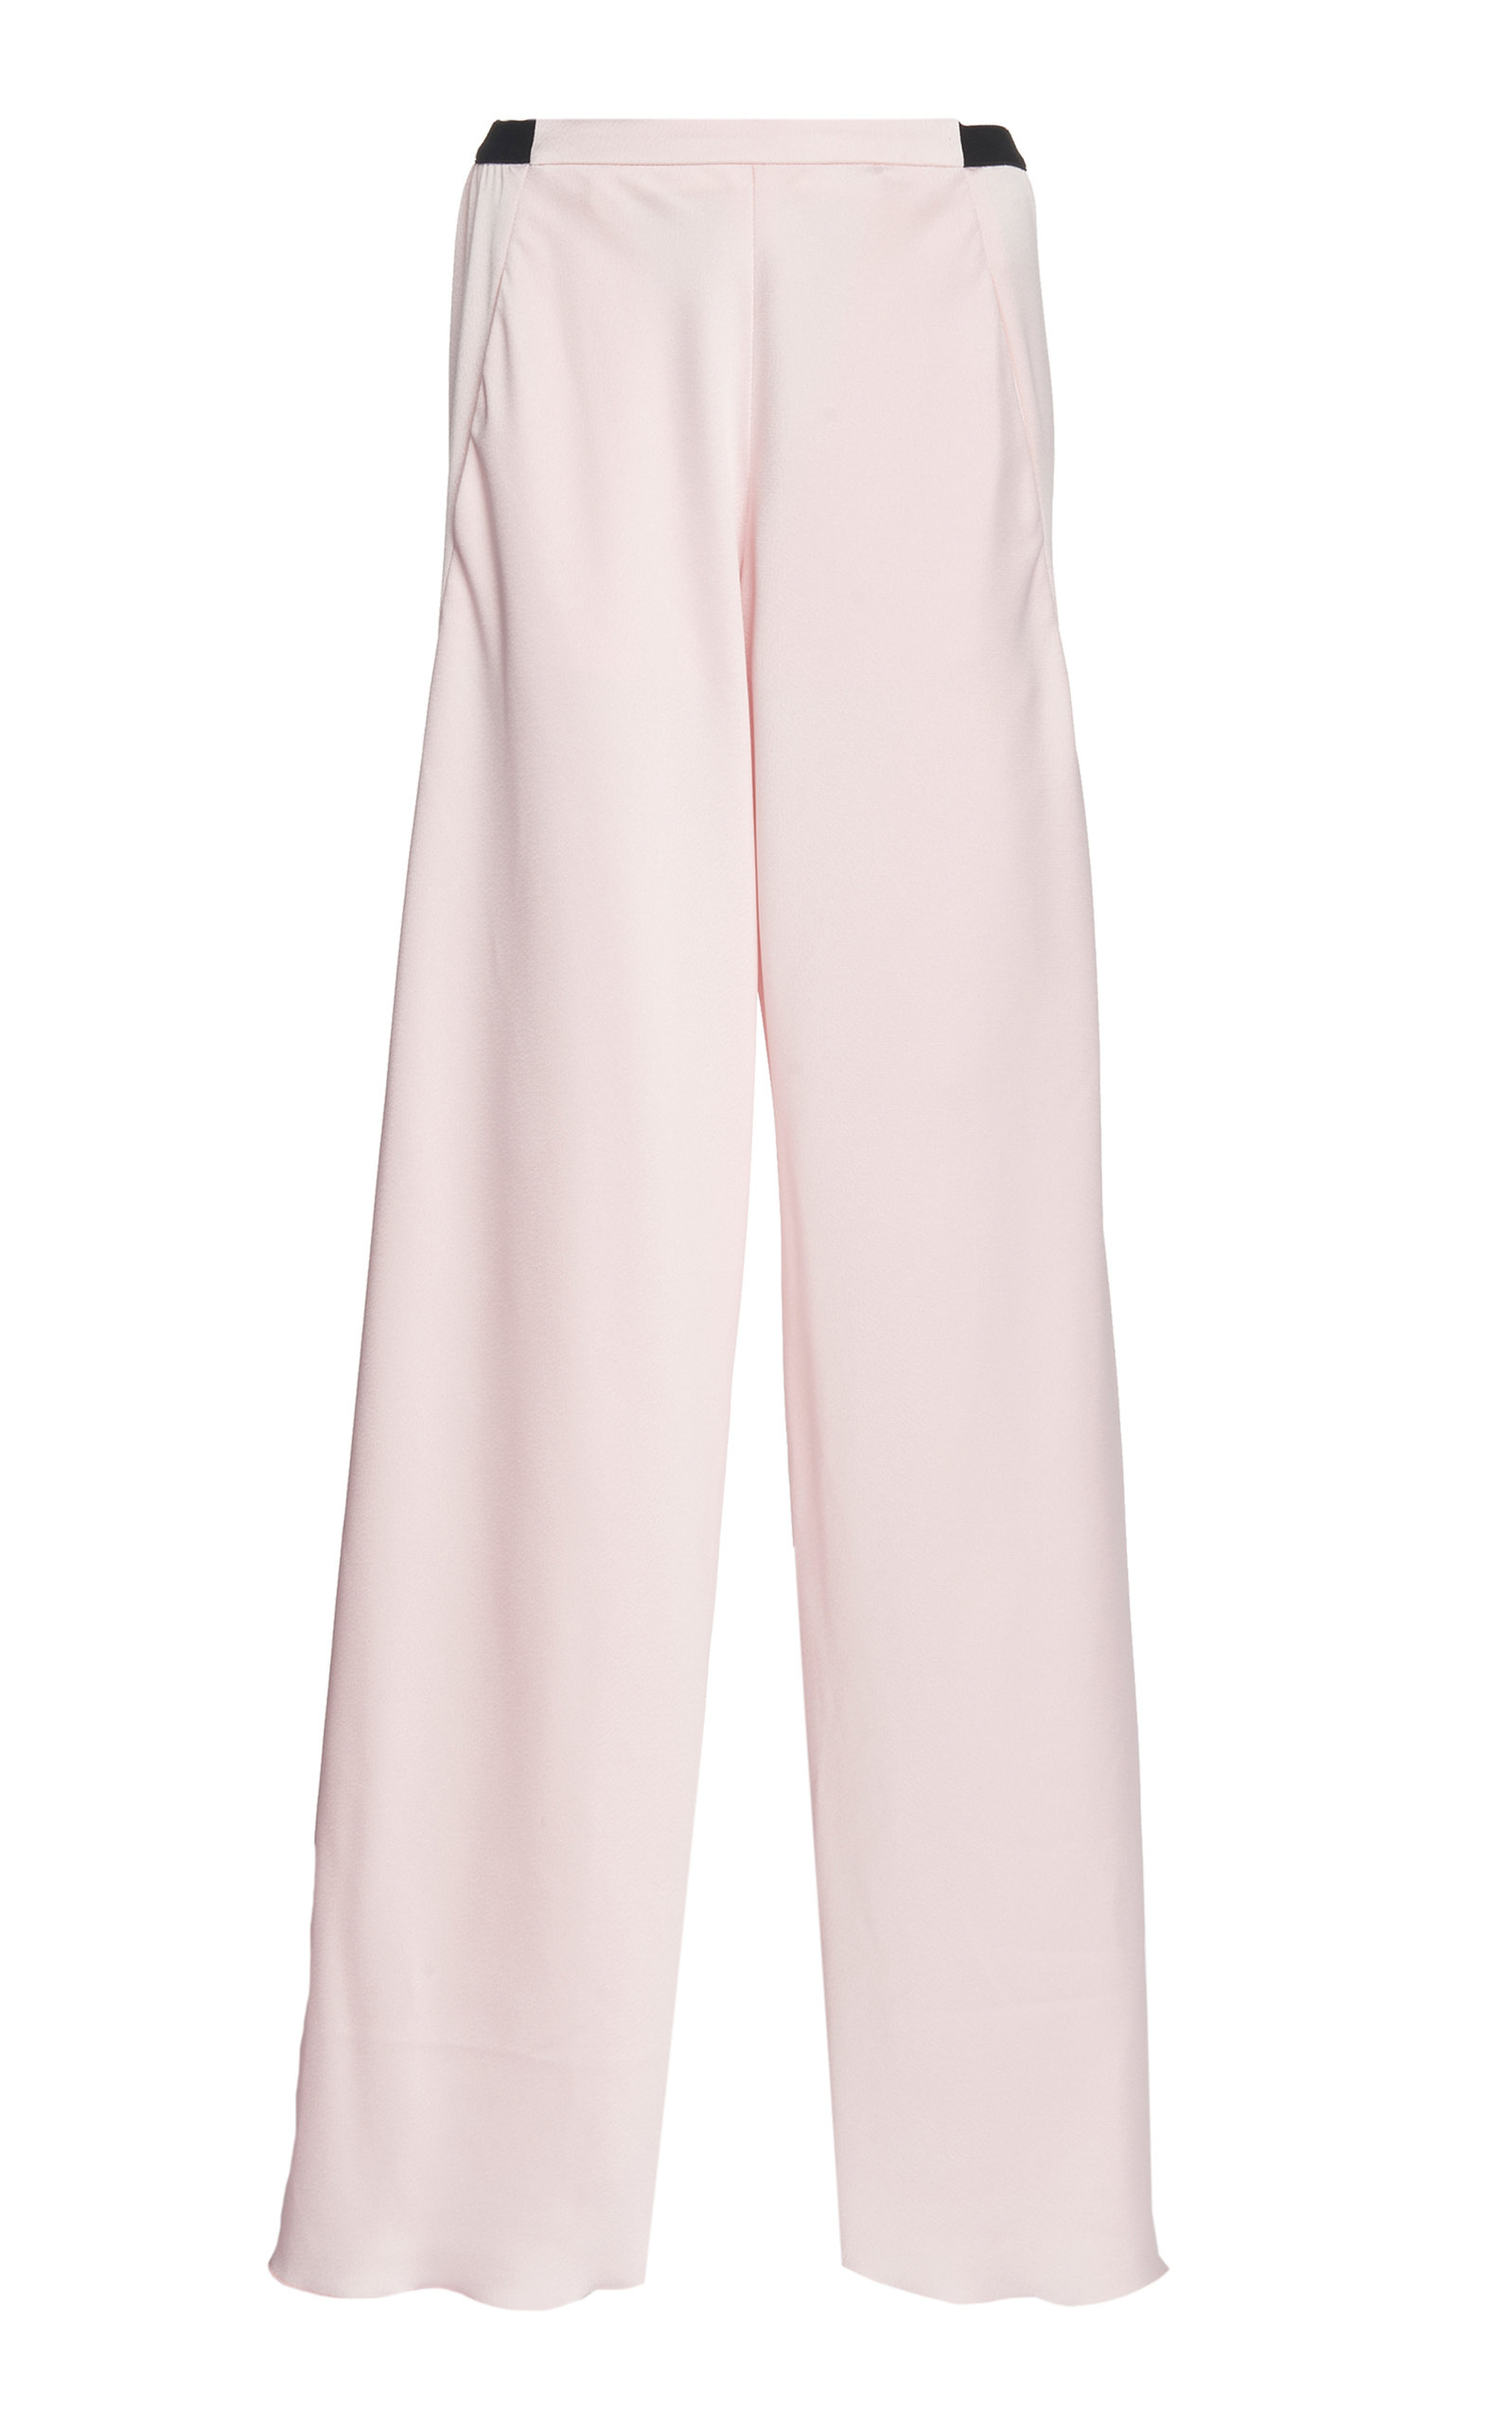 Christopher Esber BIAS SATIN PANTS